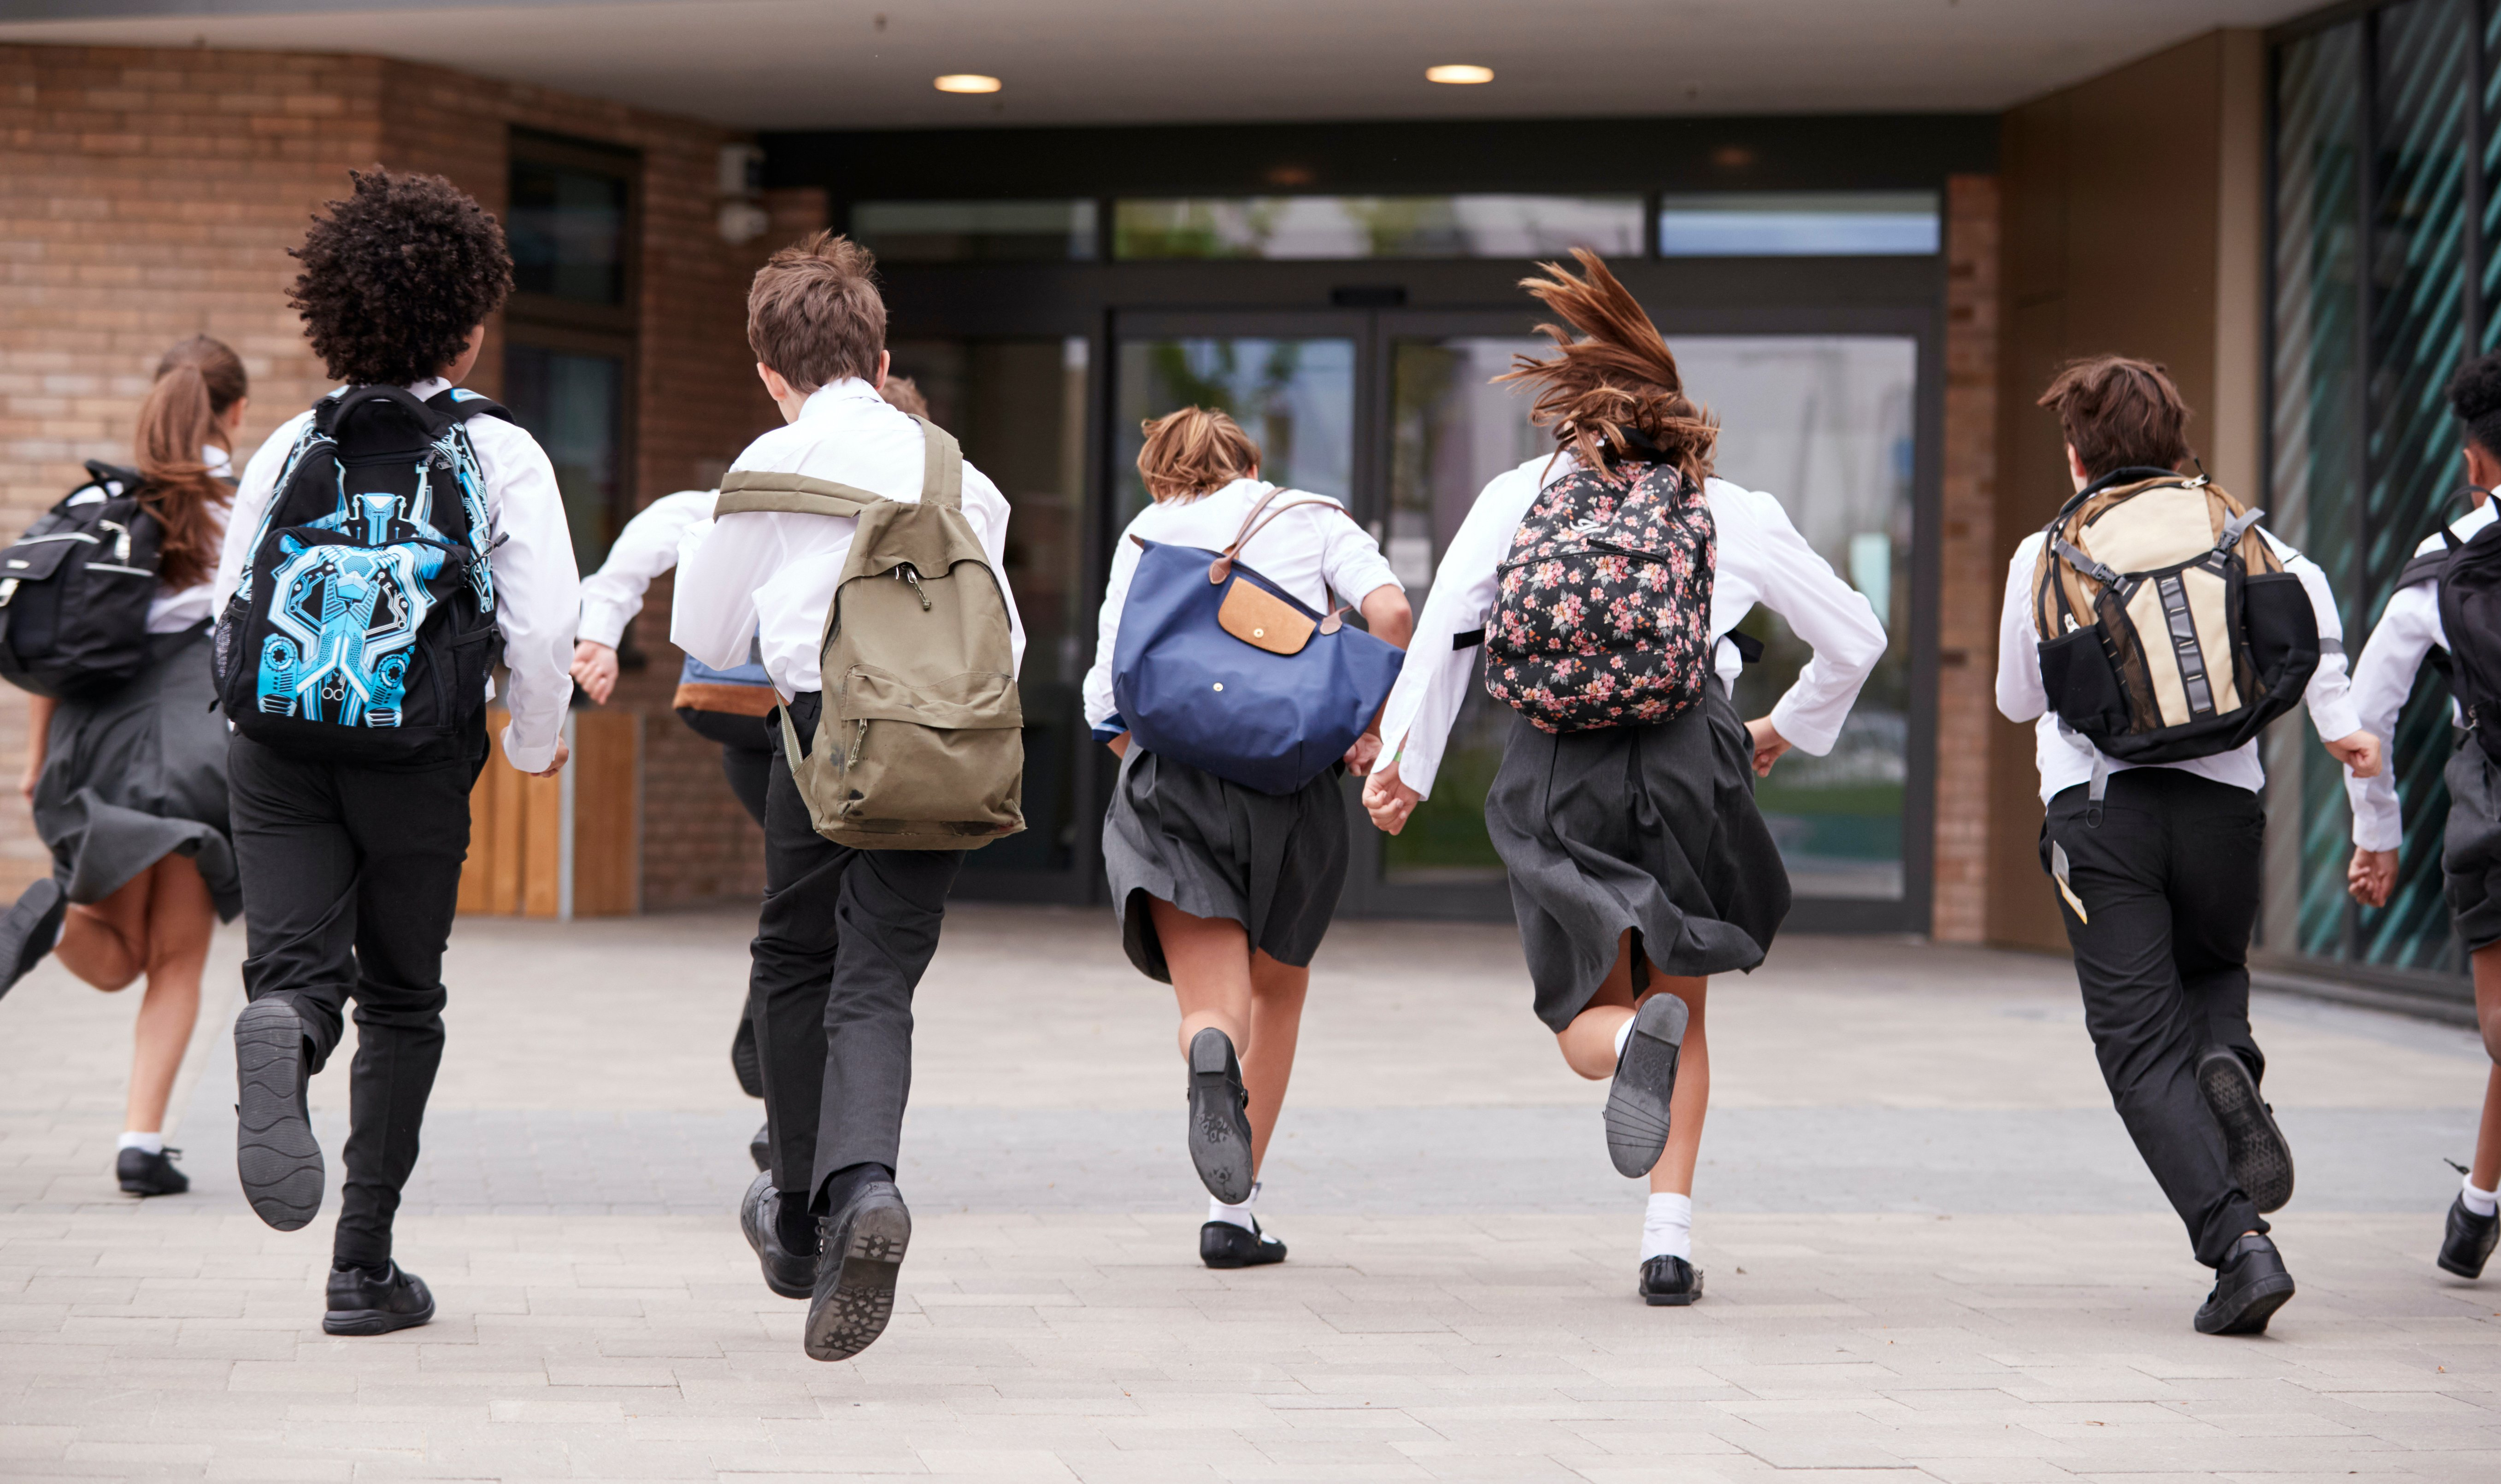 group-of-high-school-students-wearing-uniform-runn-S3R6EAG-1